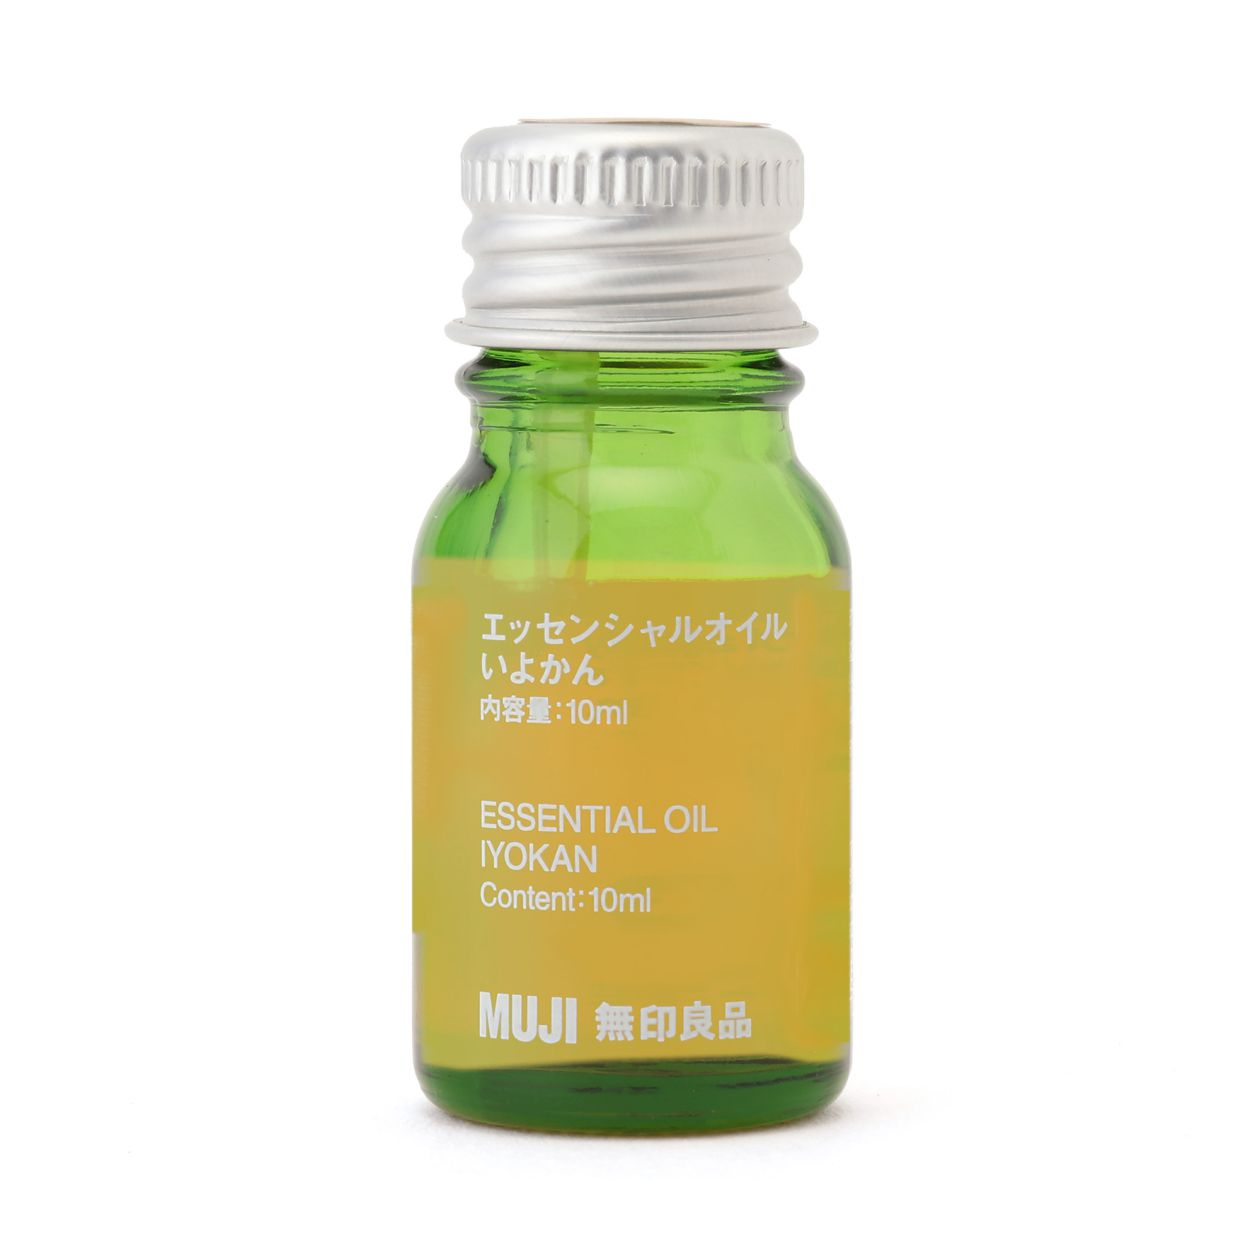 ESSENTIAL OIL IYOKAN